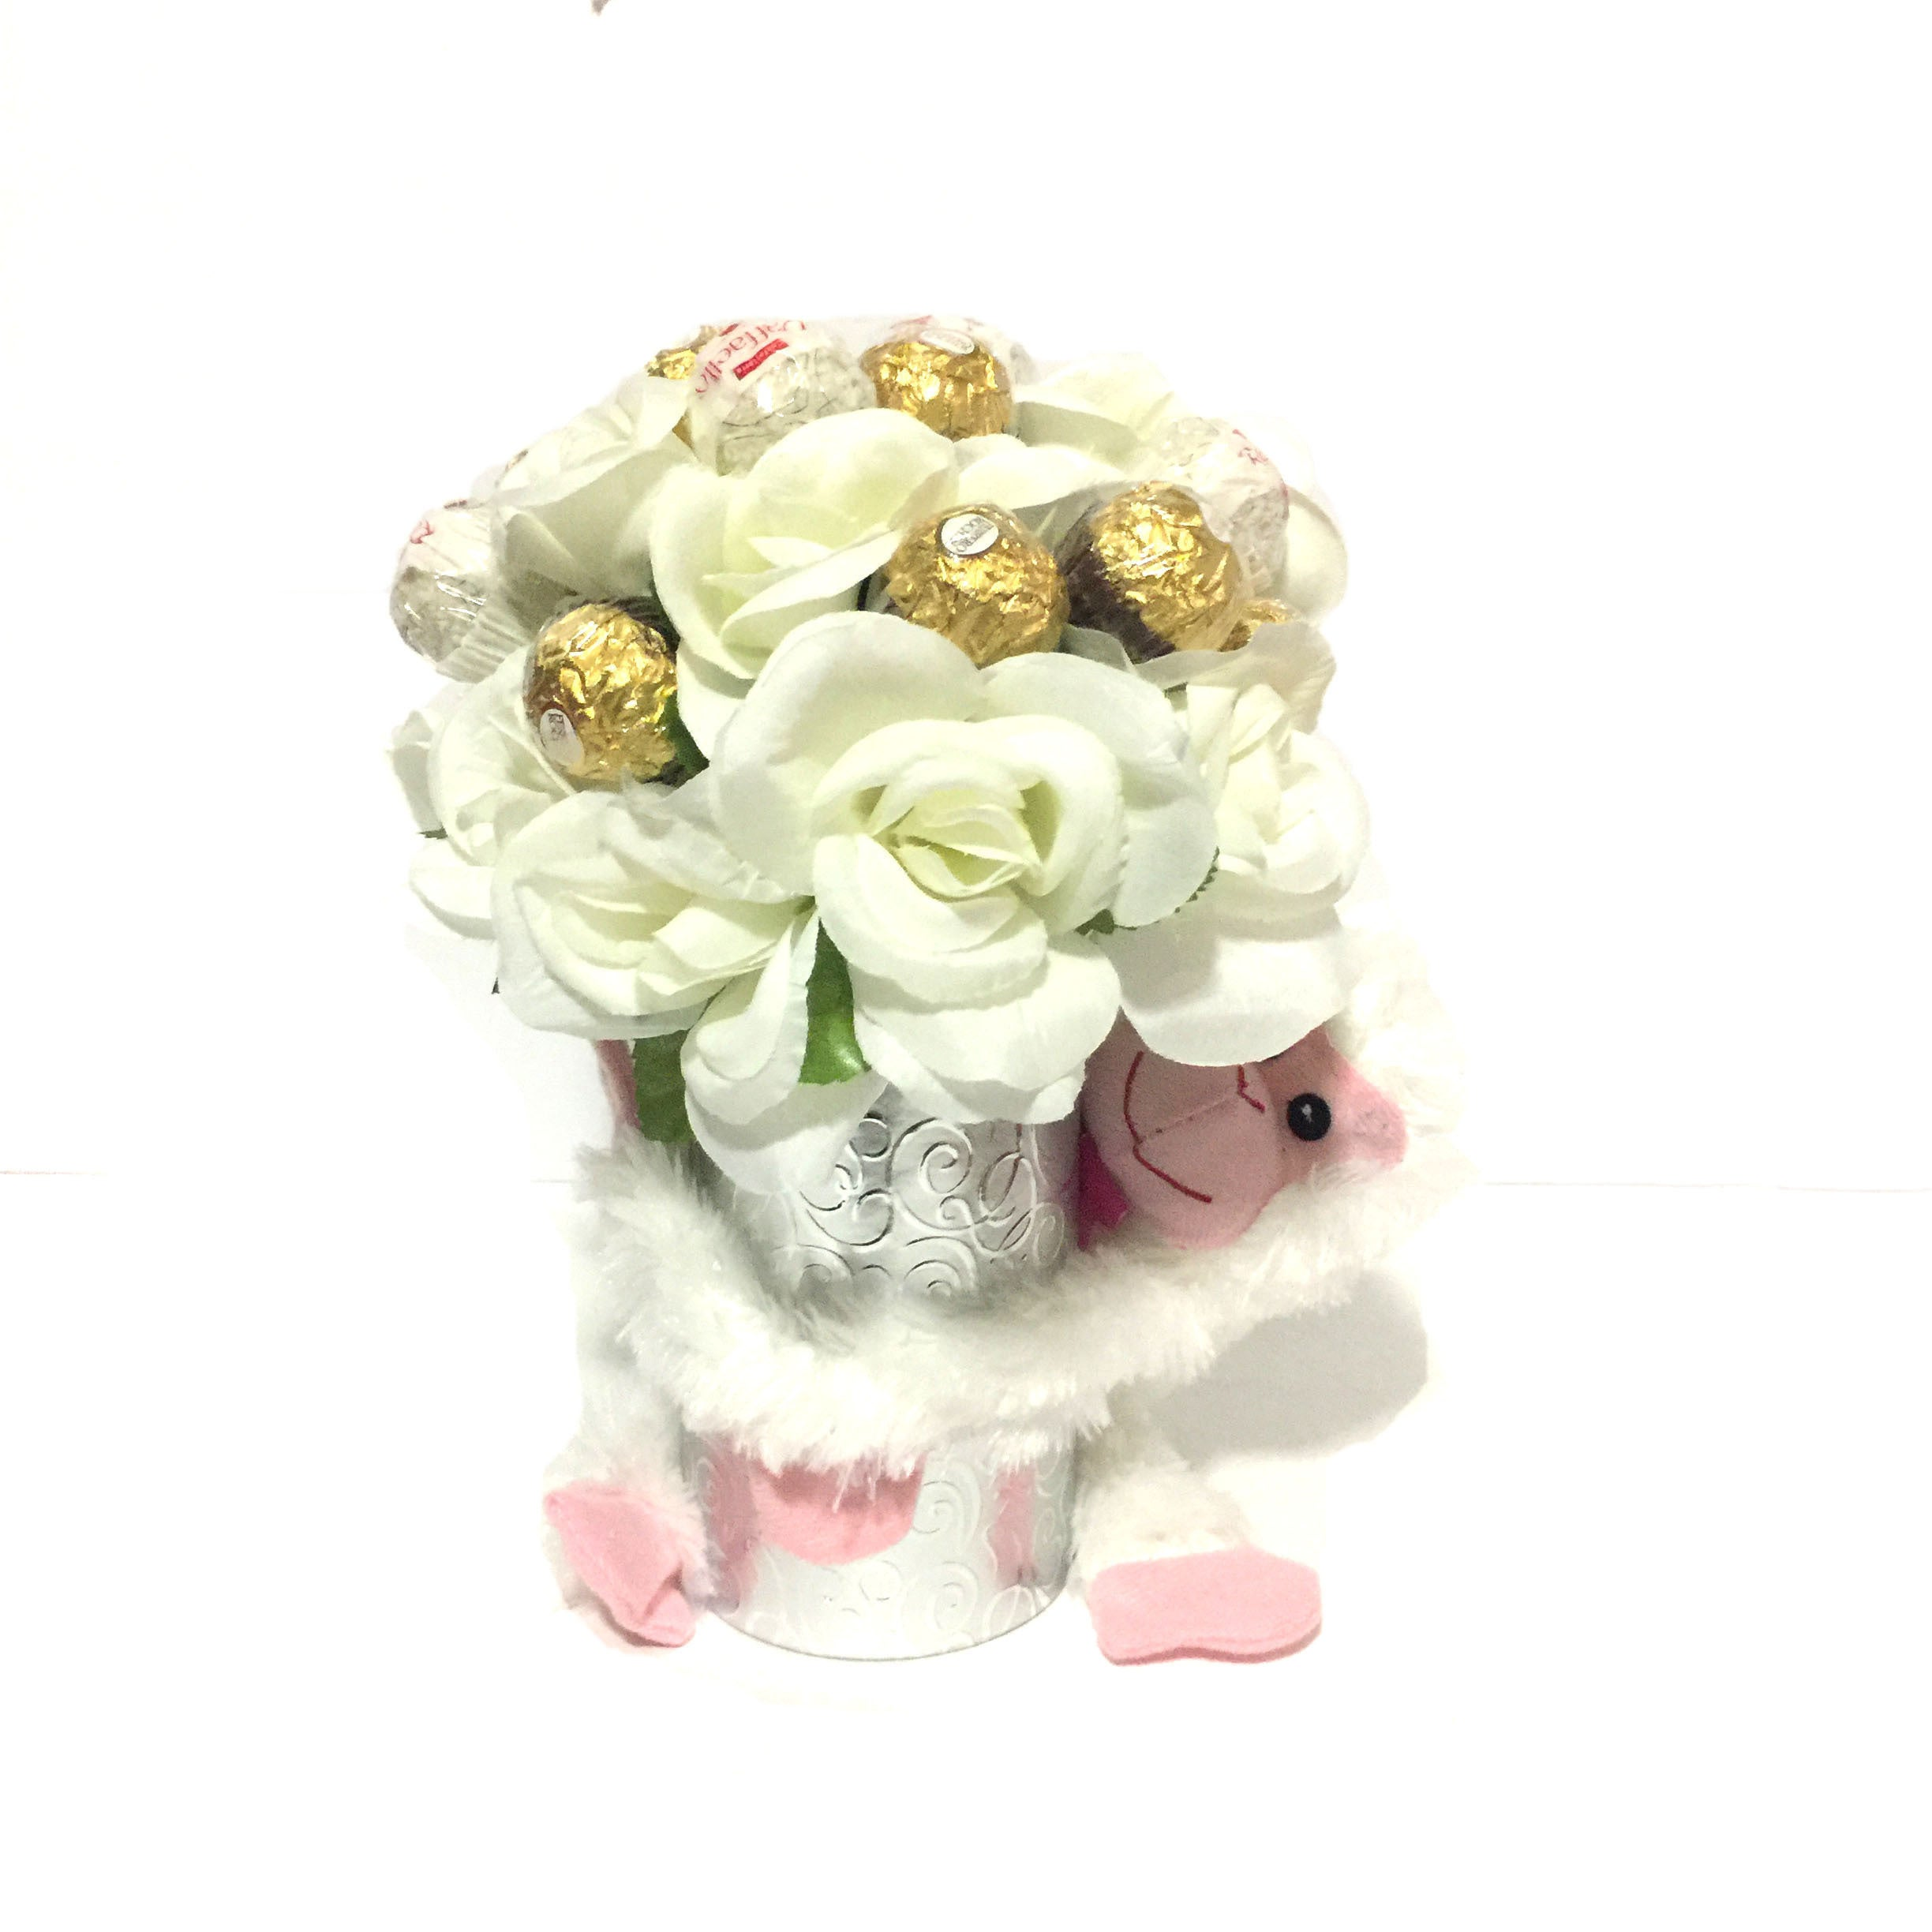 Shop my true love ferrero rocher bouquet free shipping on orders shop my true love ferrero rocher bouquet free shipping on orders over 45 overstock 19895601 izmirmasajfo